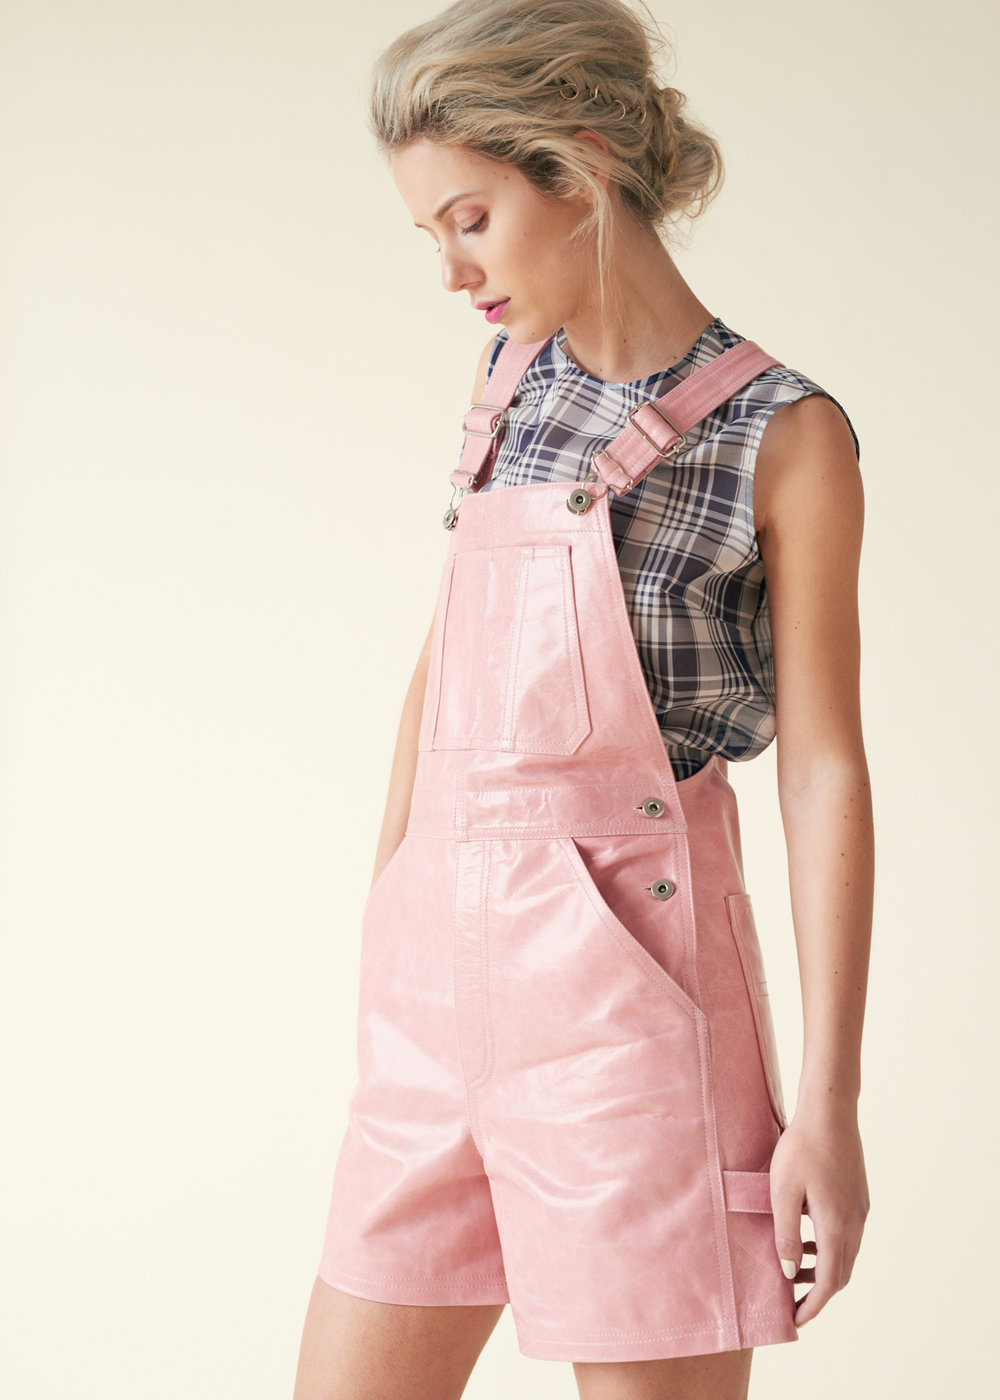 Not all festival looks need to be rock chic, pretty in pink is also a winner. These Parker Dungarees are adorable and teamed with festival candy floss, you're perfectly instagramable!